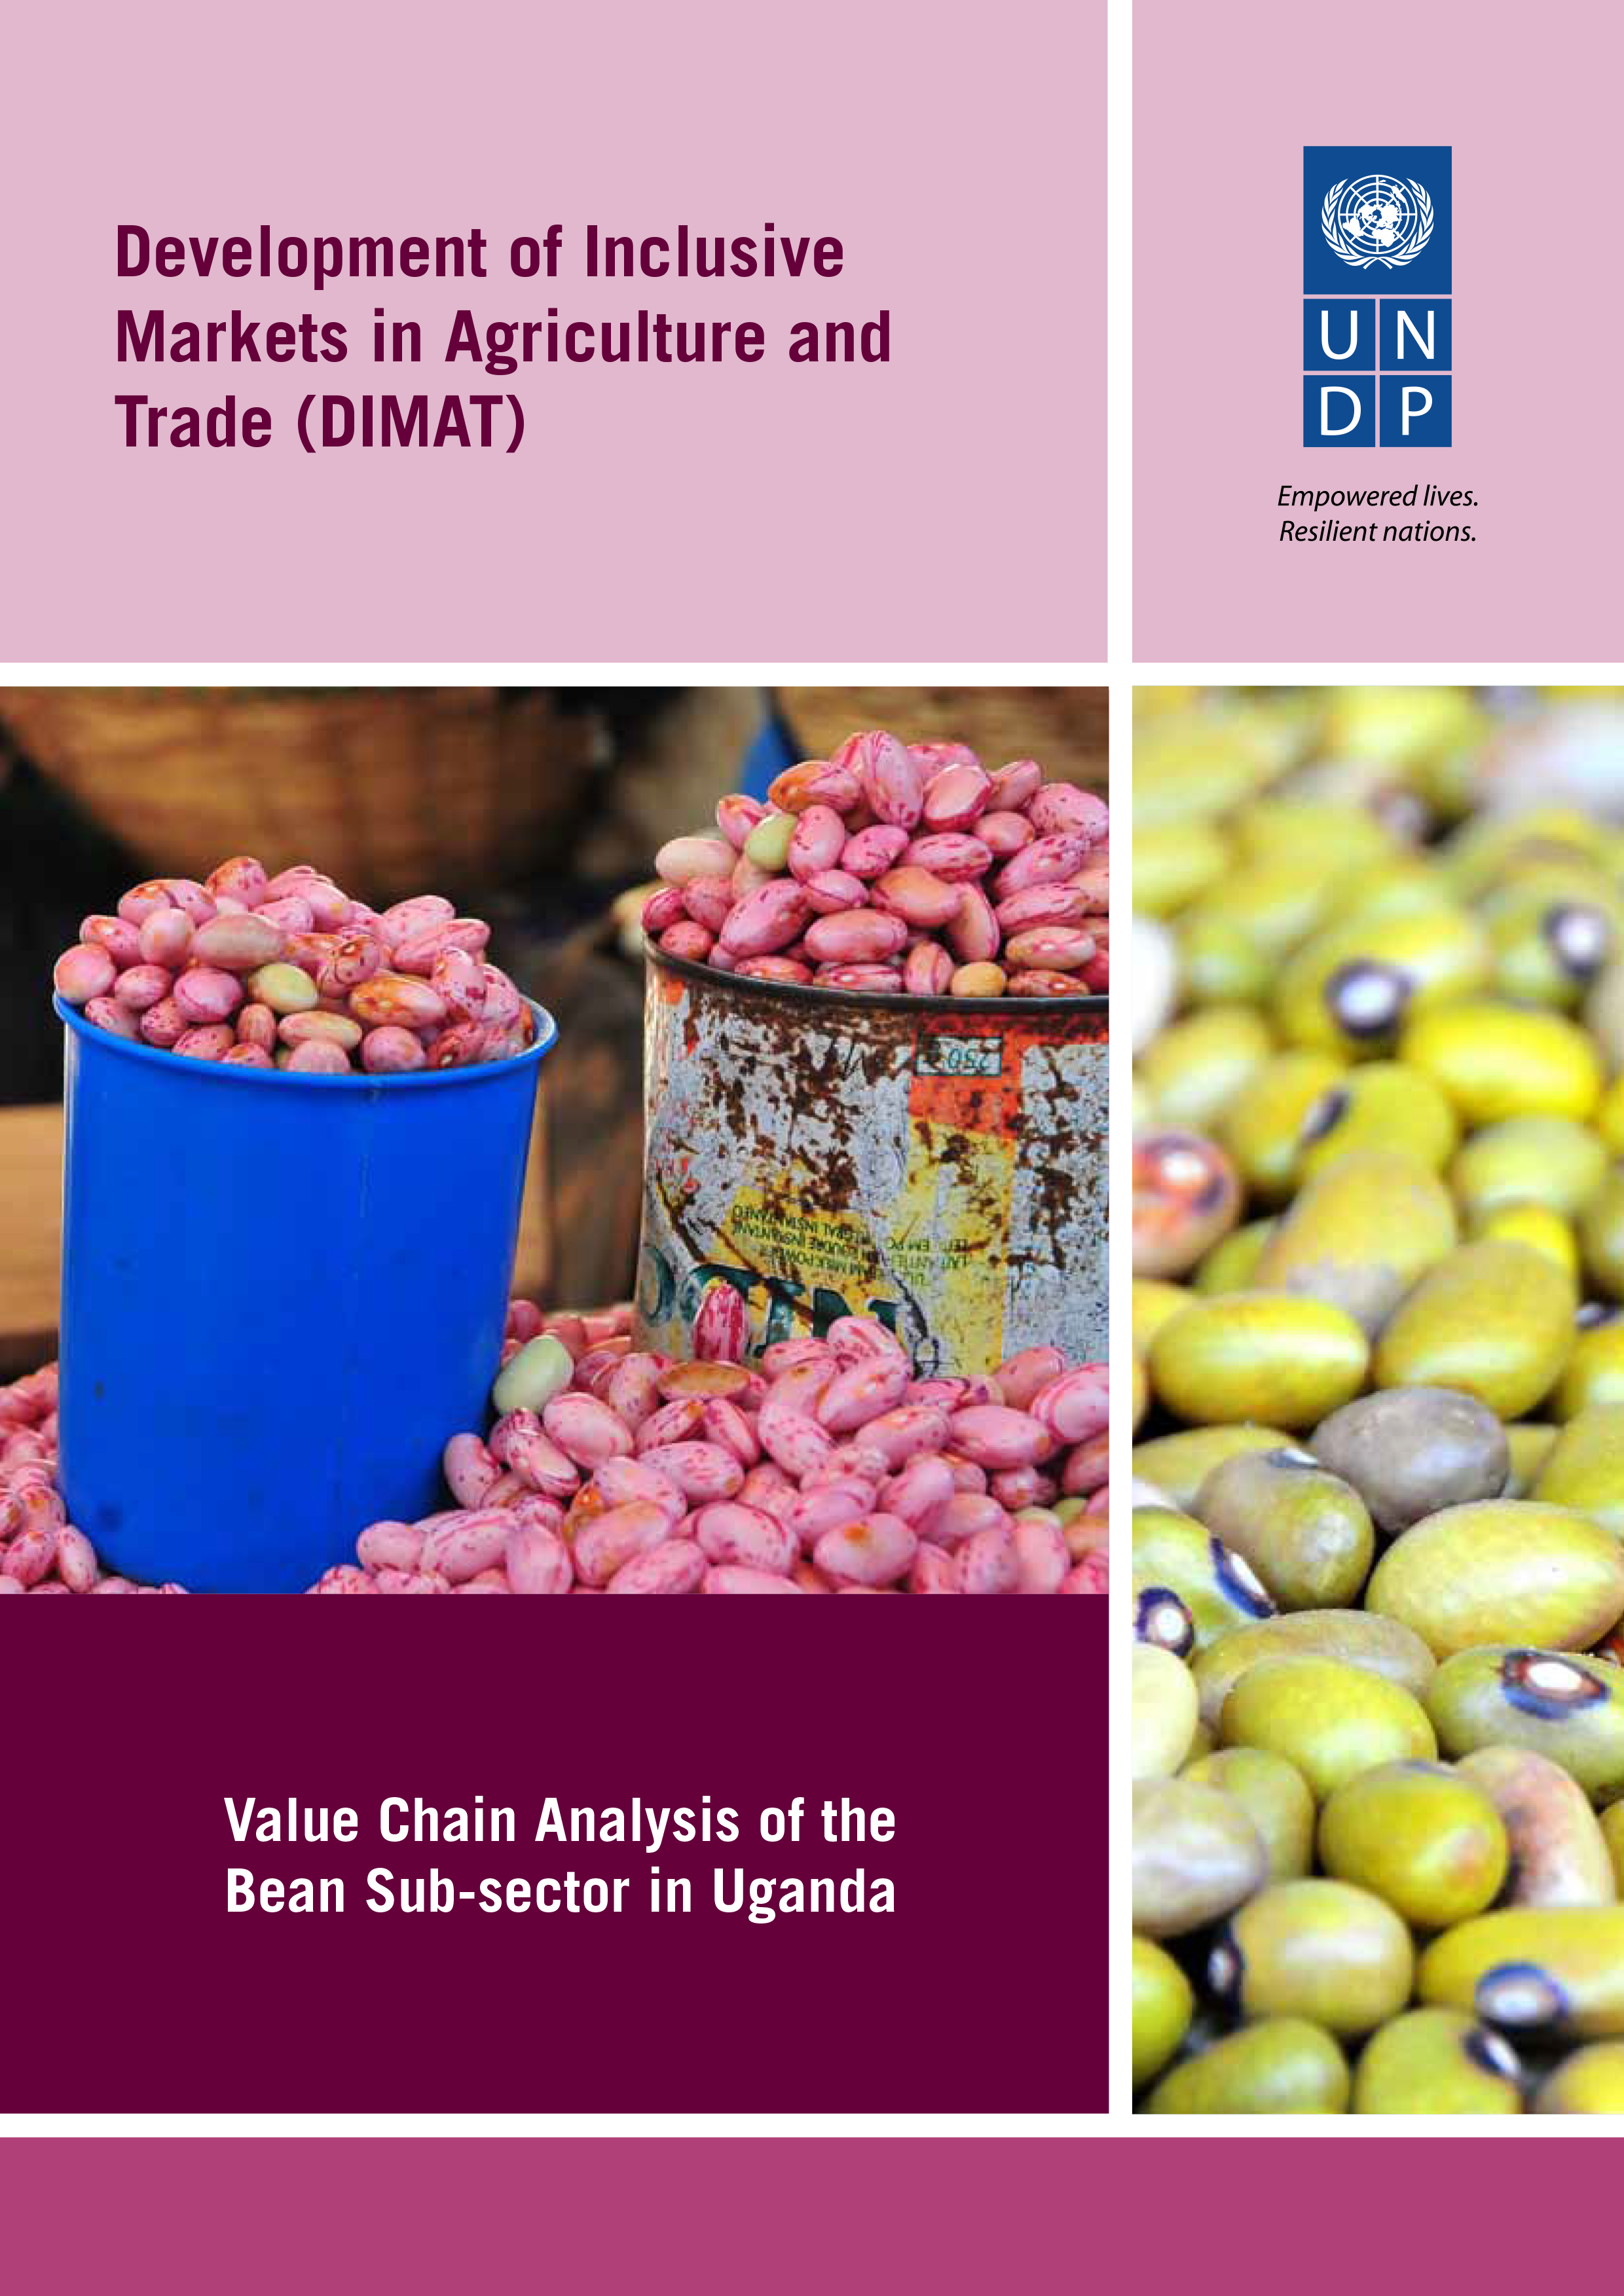 Value Chain Analysis of the Bean Sub-sector in Uganda - Kilimo Trust